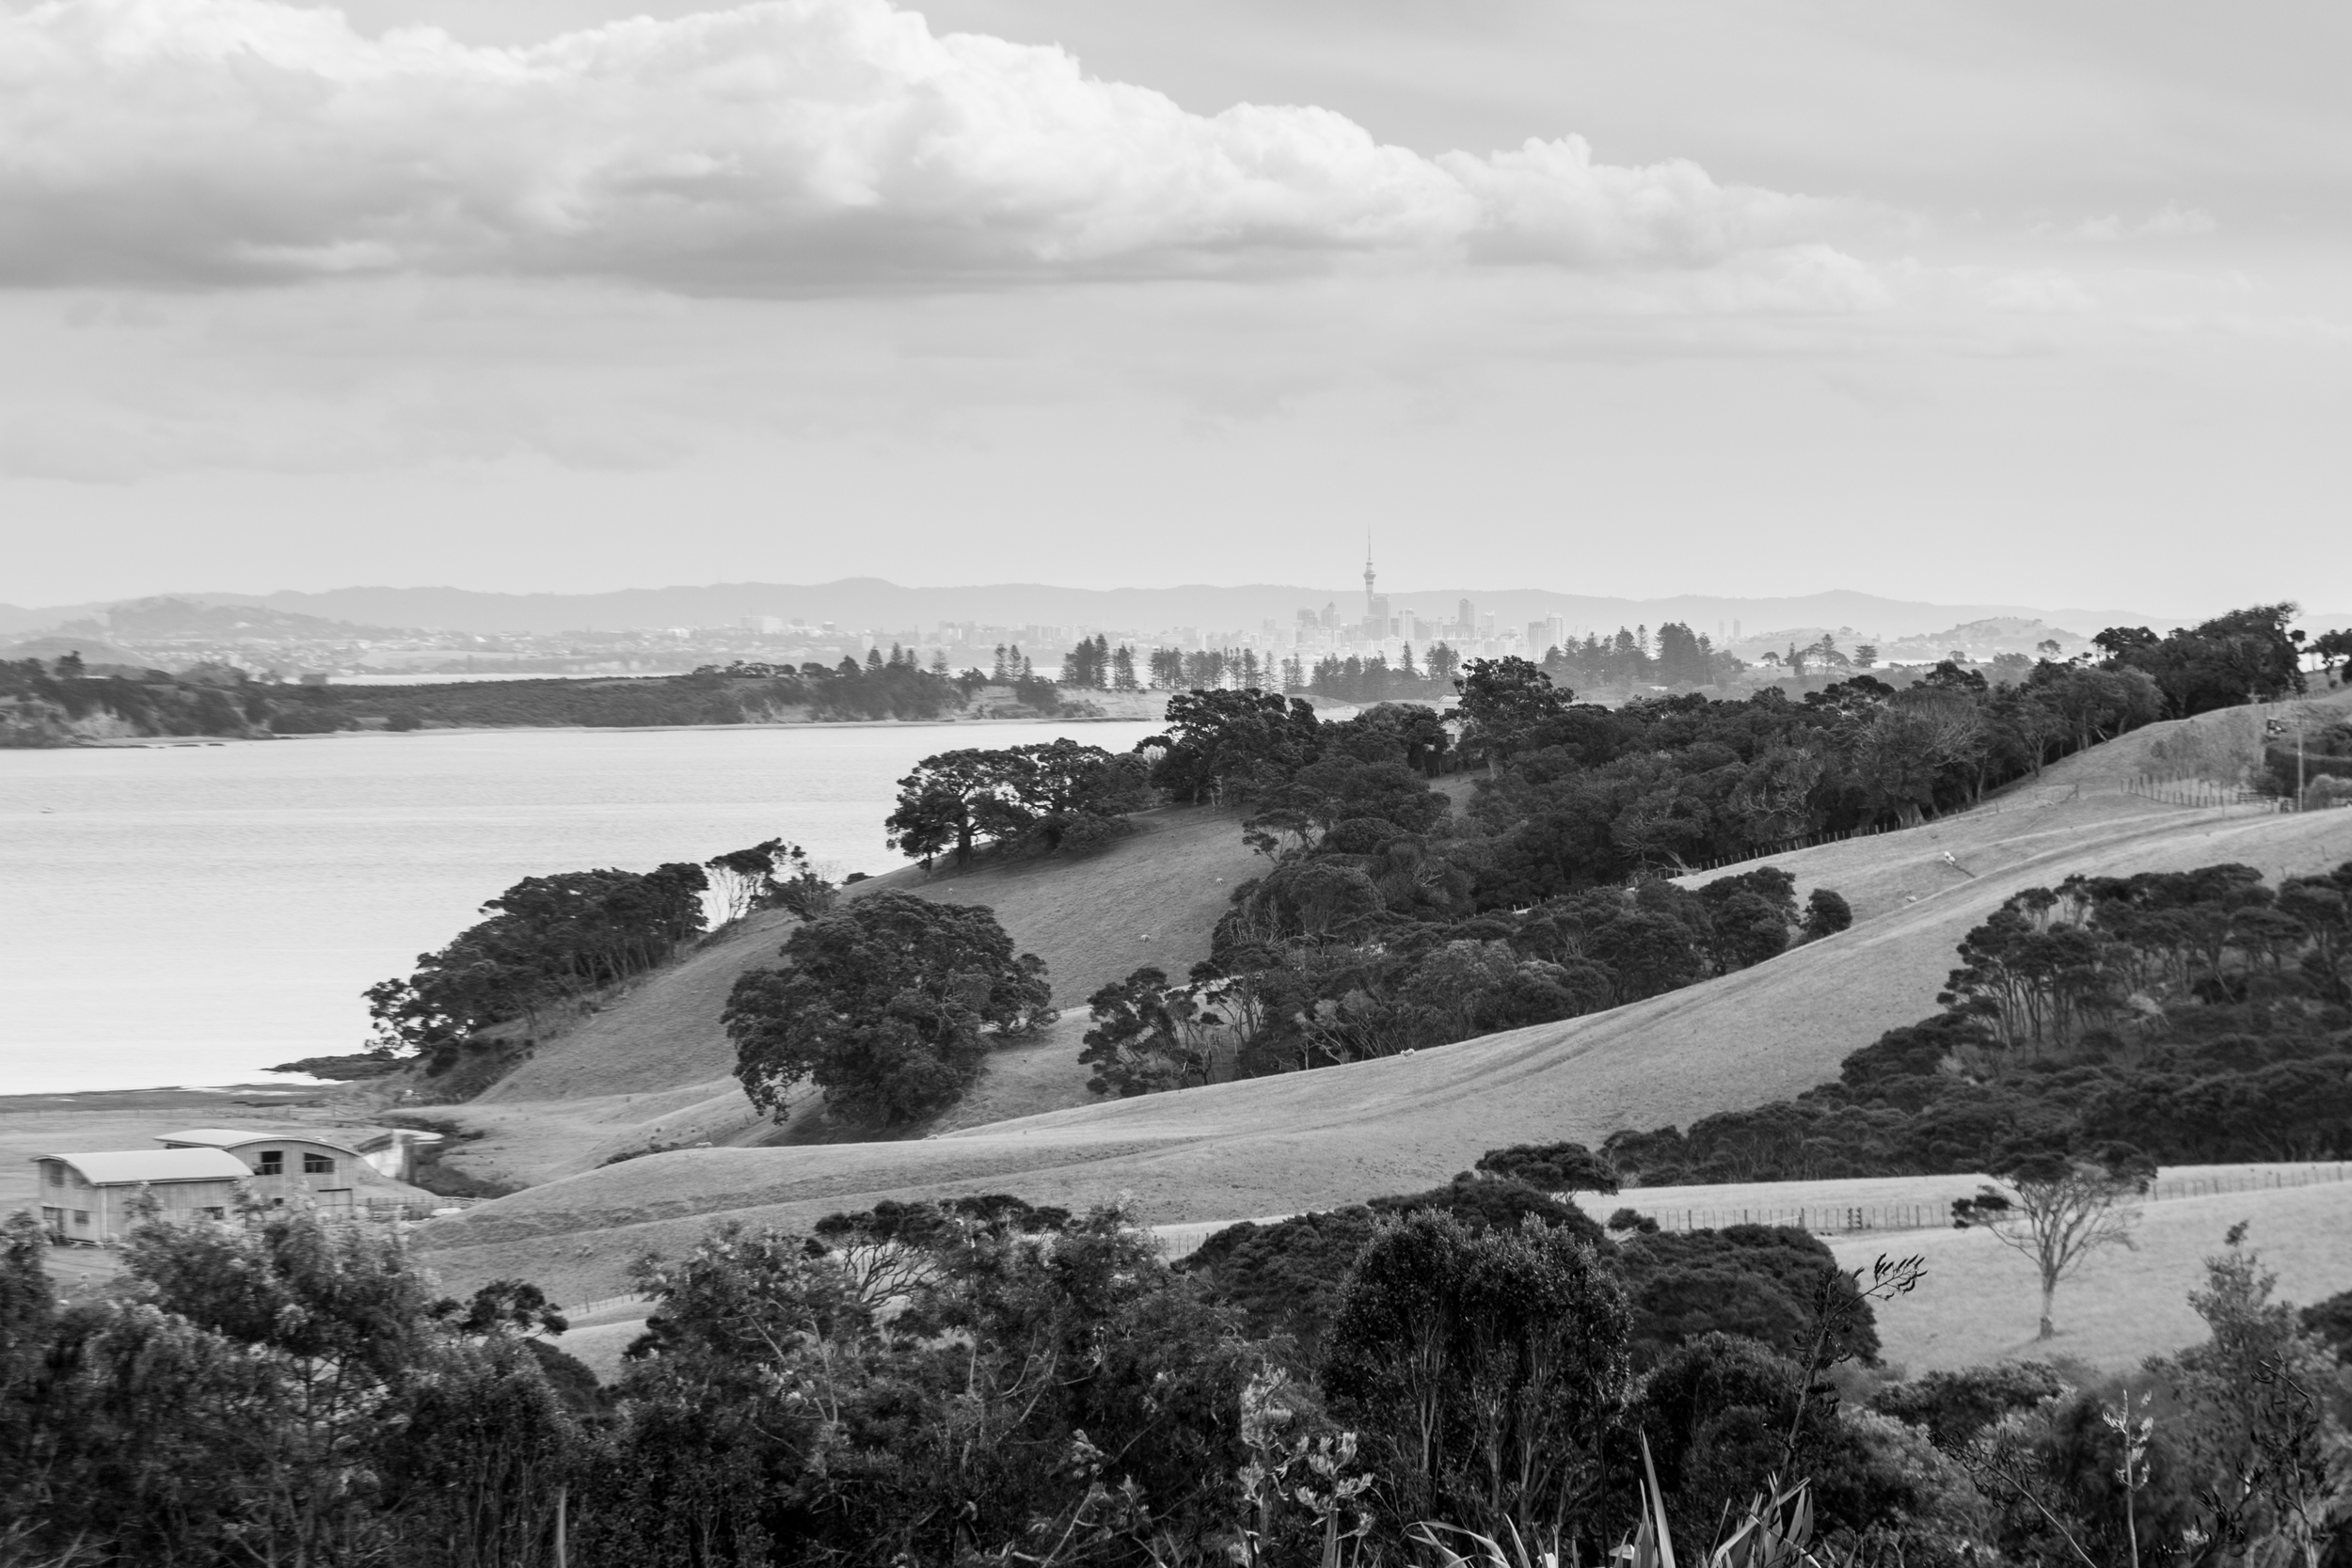 Auckland from Waiheke